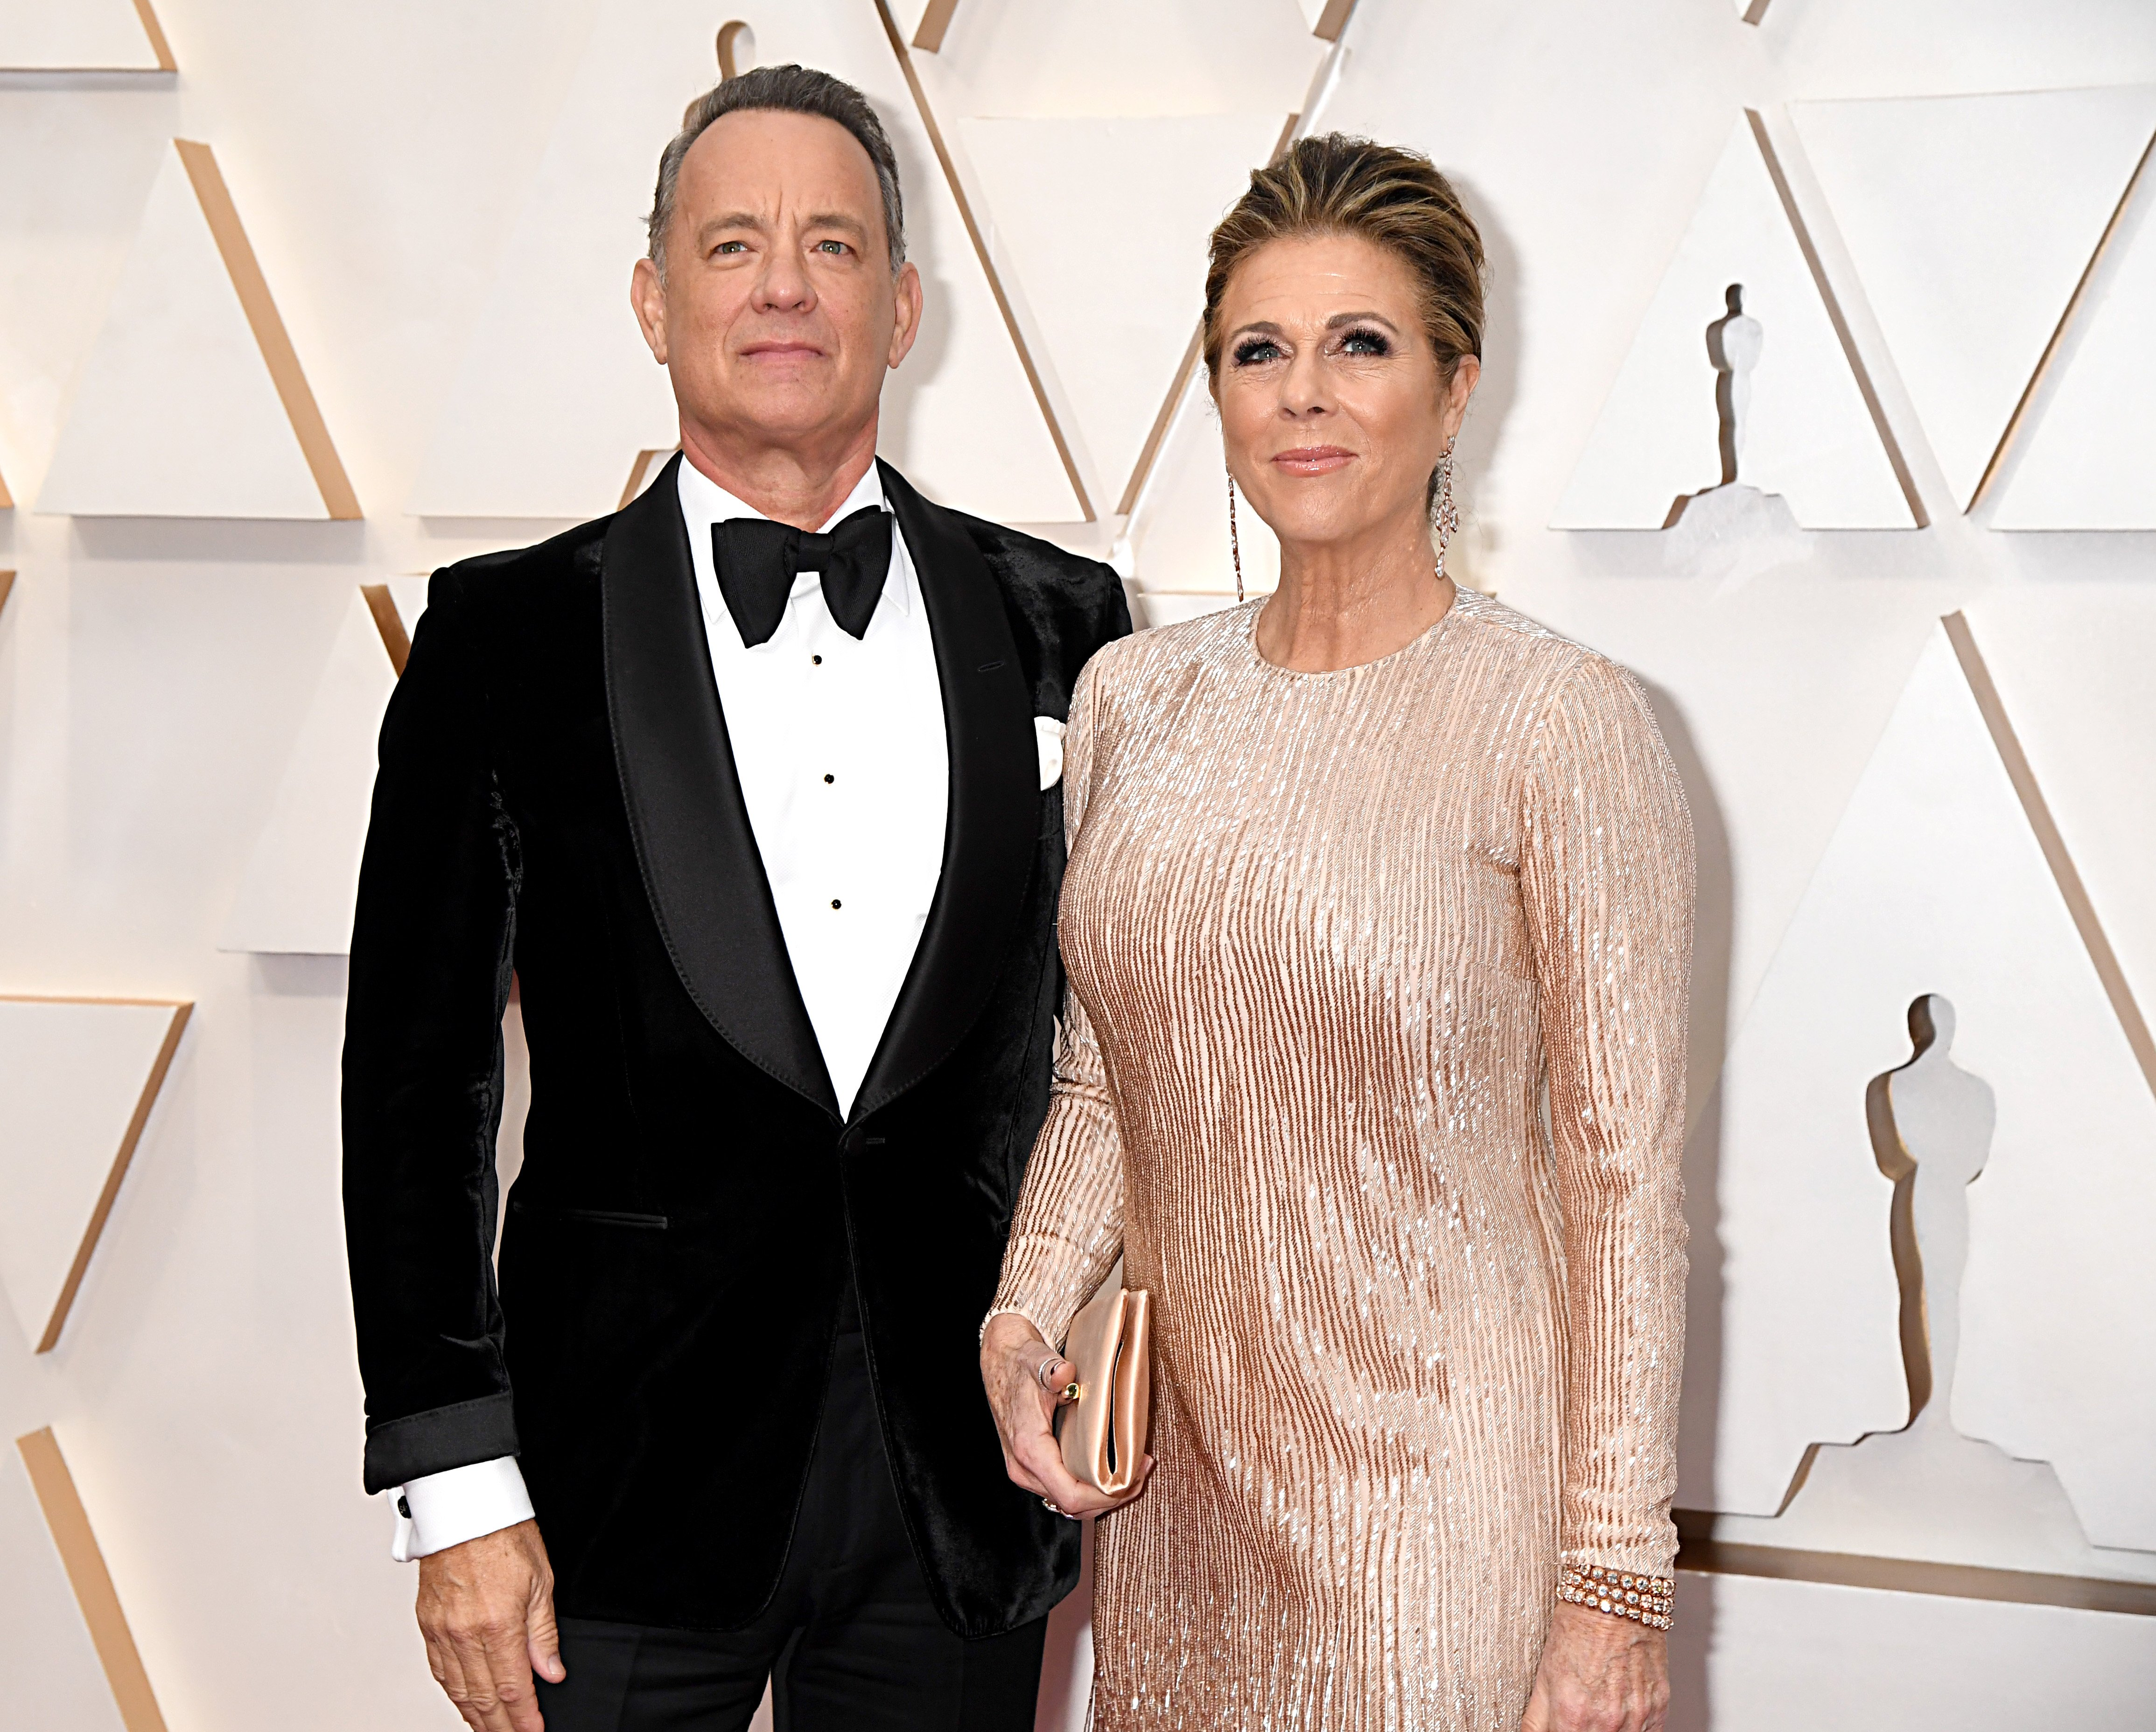 Tom Hanks and Rita Wilson attend the 92nd Annual Academy Awards at Hollywood and Highland on February 09, 2020, in Hollywood, California. | Source: Getty Images.